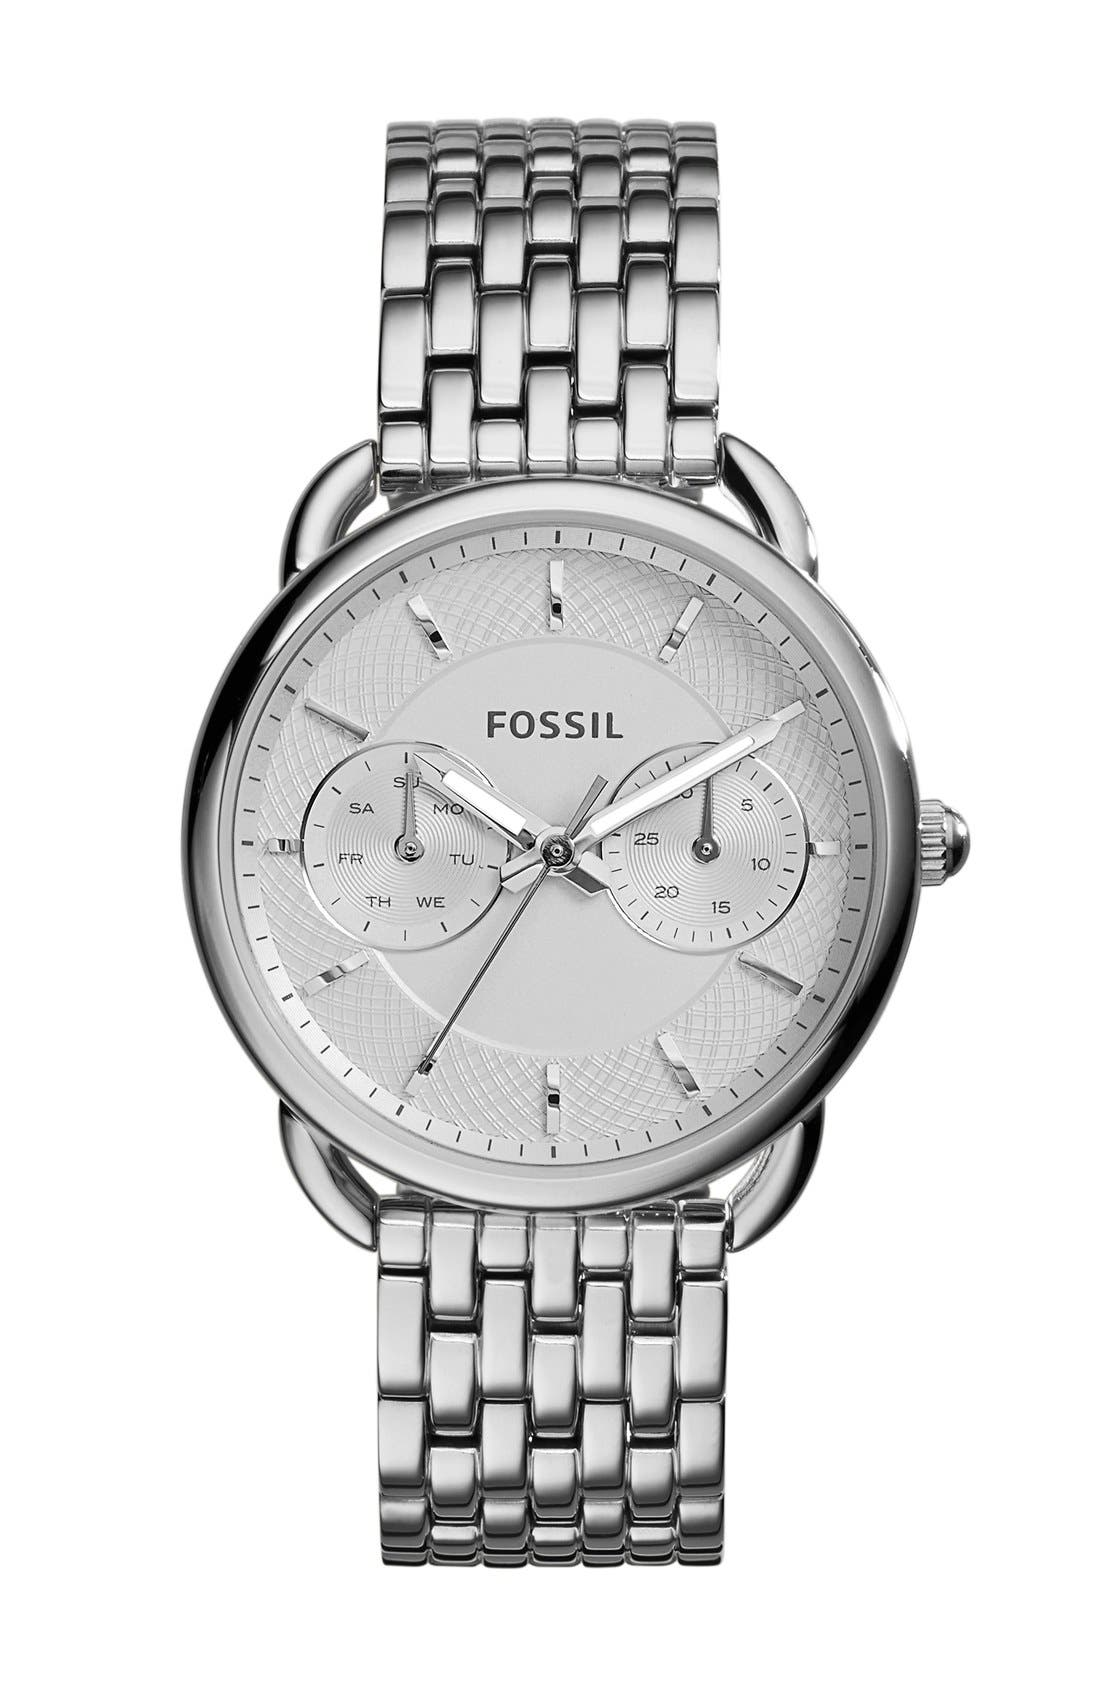 Main Image - Fossil 'Tailor' Multifunction Bracelet Watch, 16mm